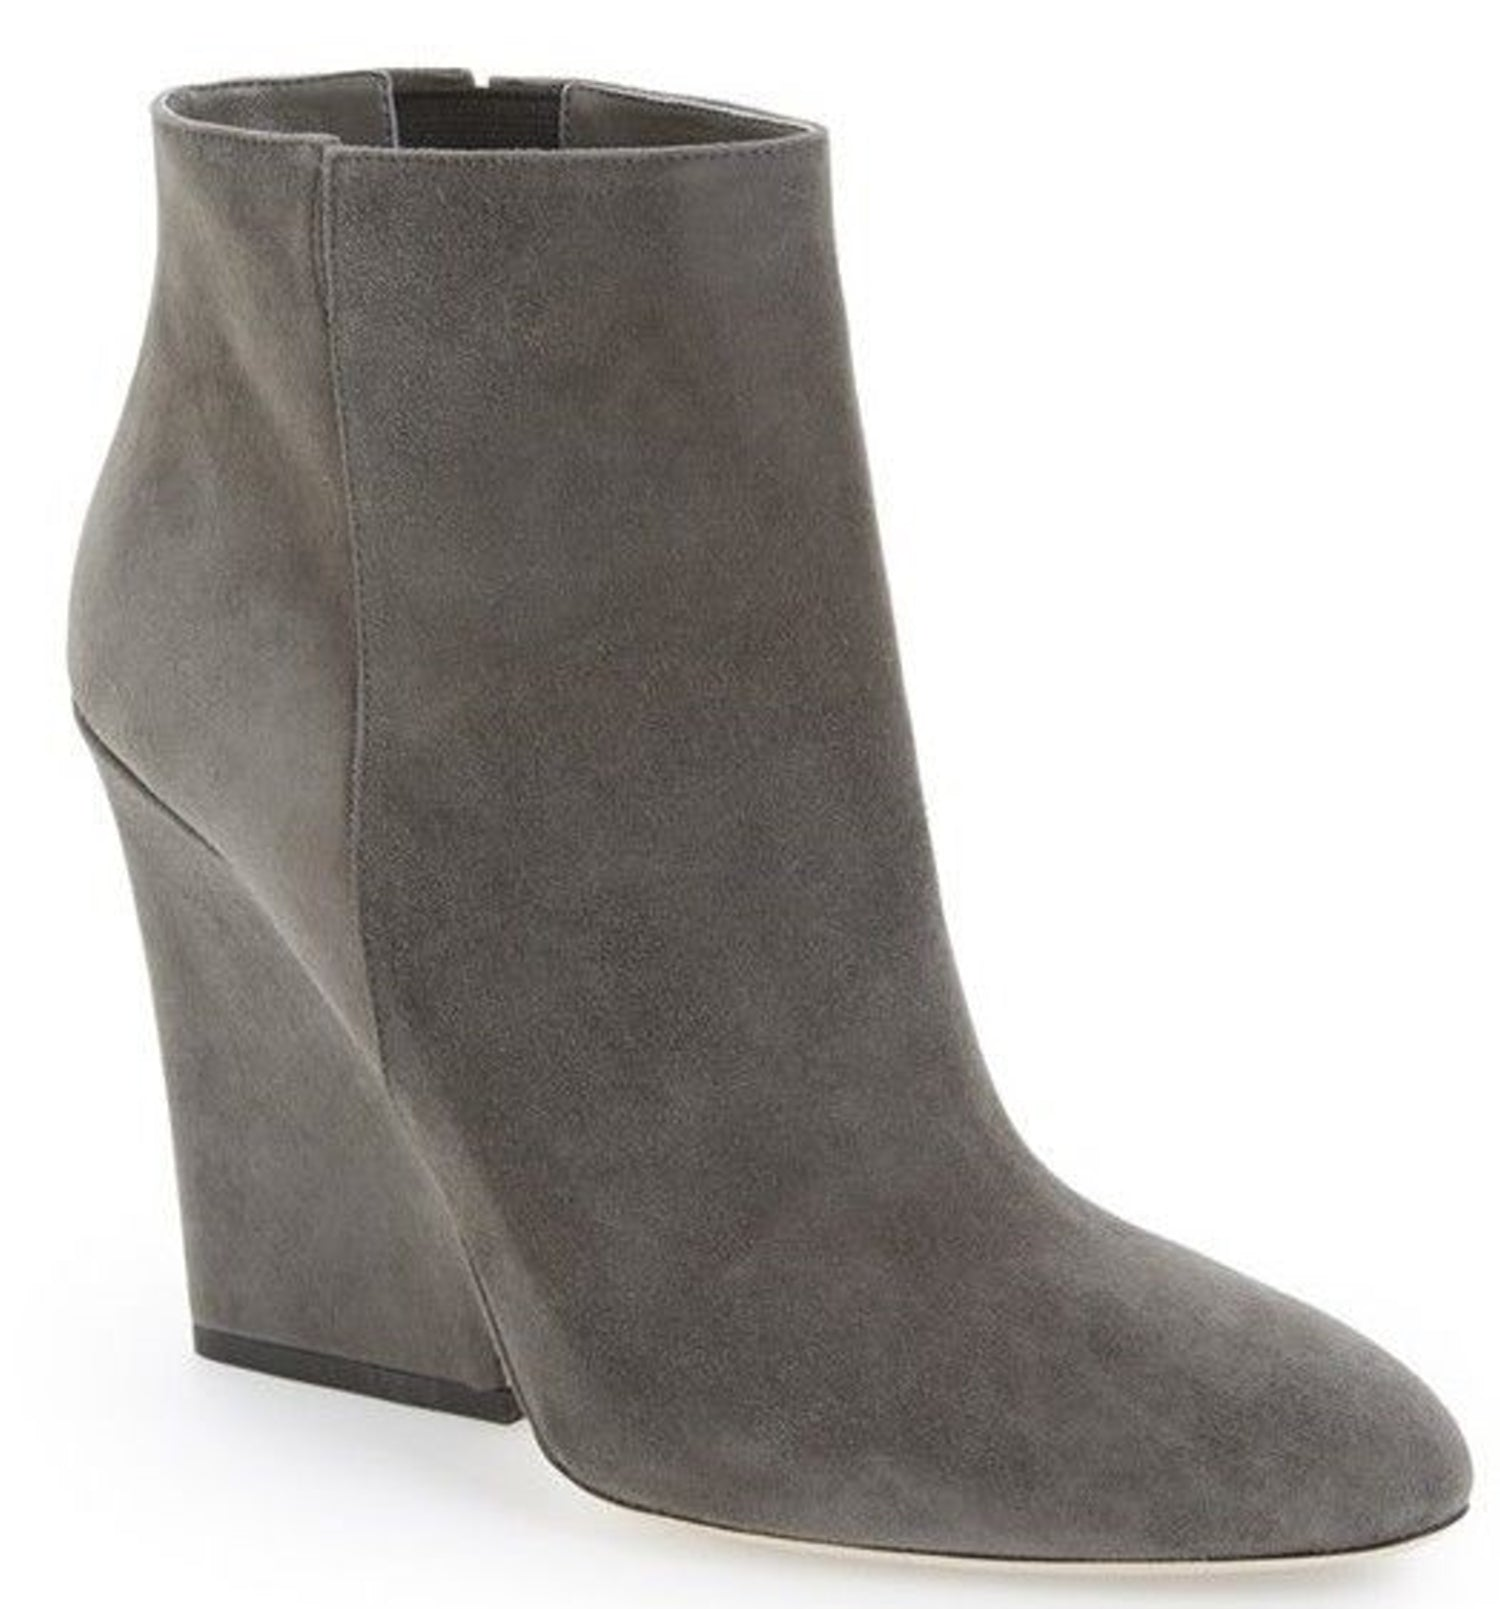 Jimmy Choo Suede Myth Wedge Ankle Boots SZ 38 New Short Classic Pointy Toe $975